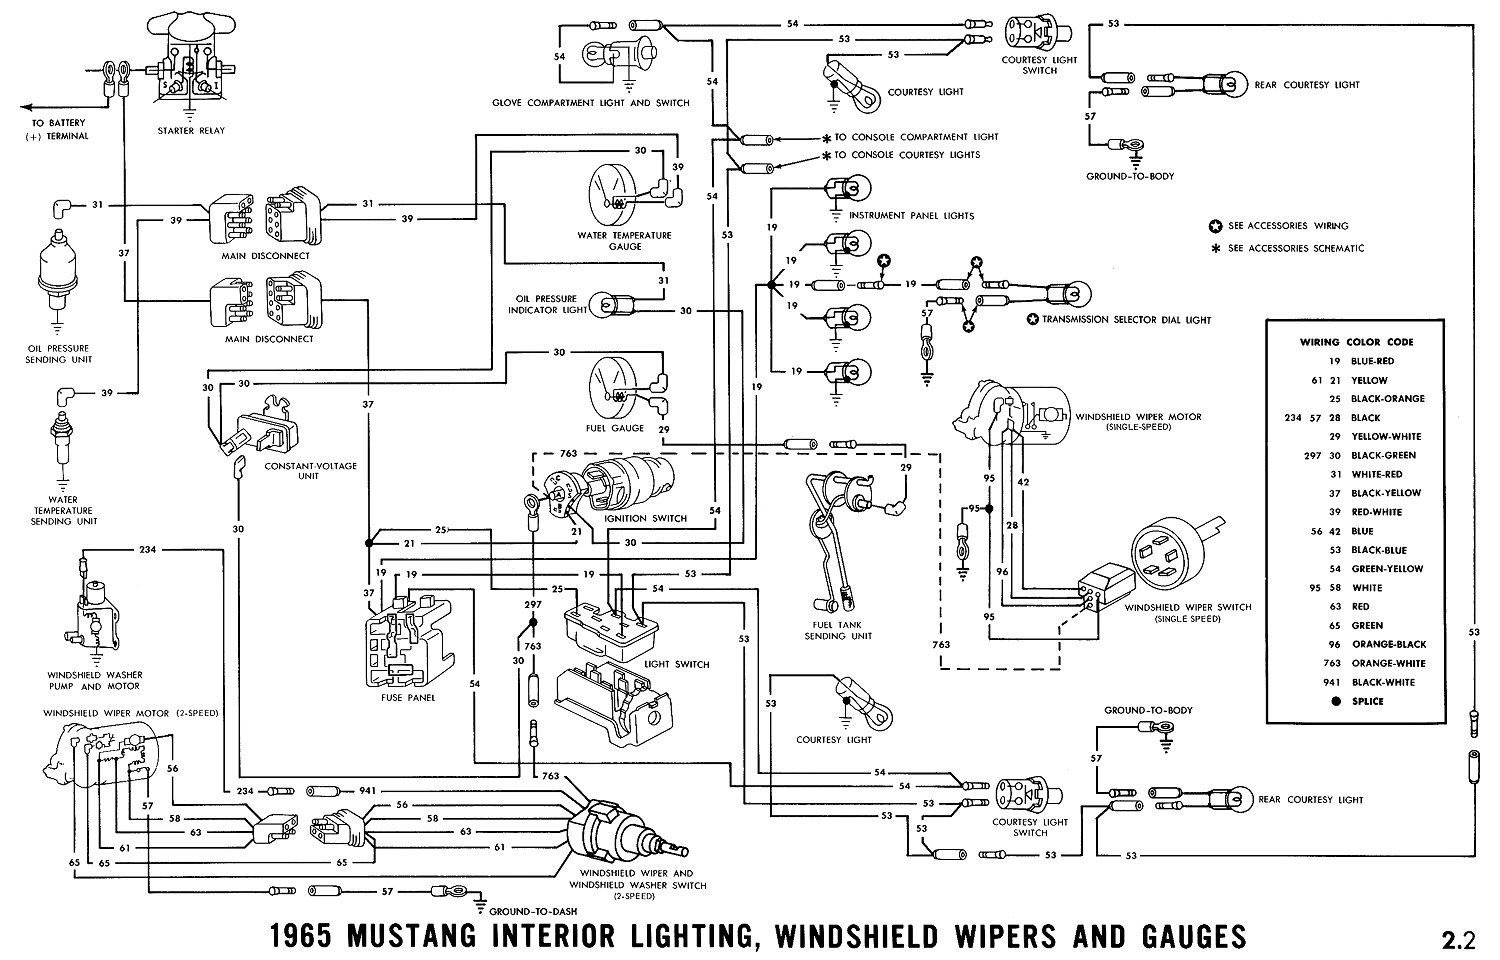 1965g 1965 mustang wiring diagrams average joe restoration 1968 mustang ignition wiring diagram at n-0.co